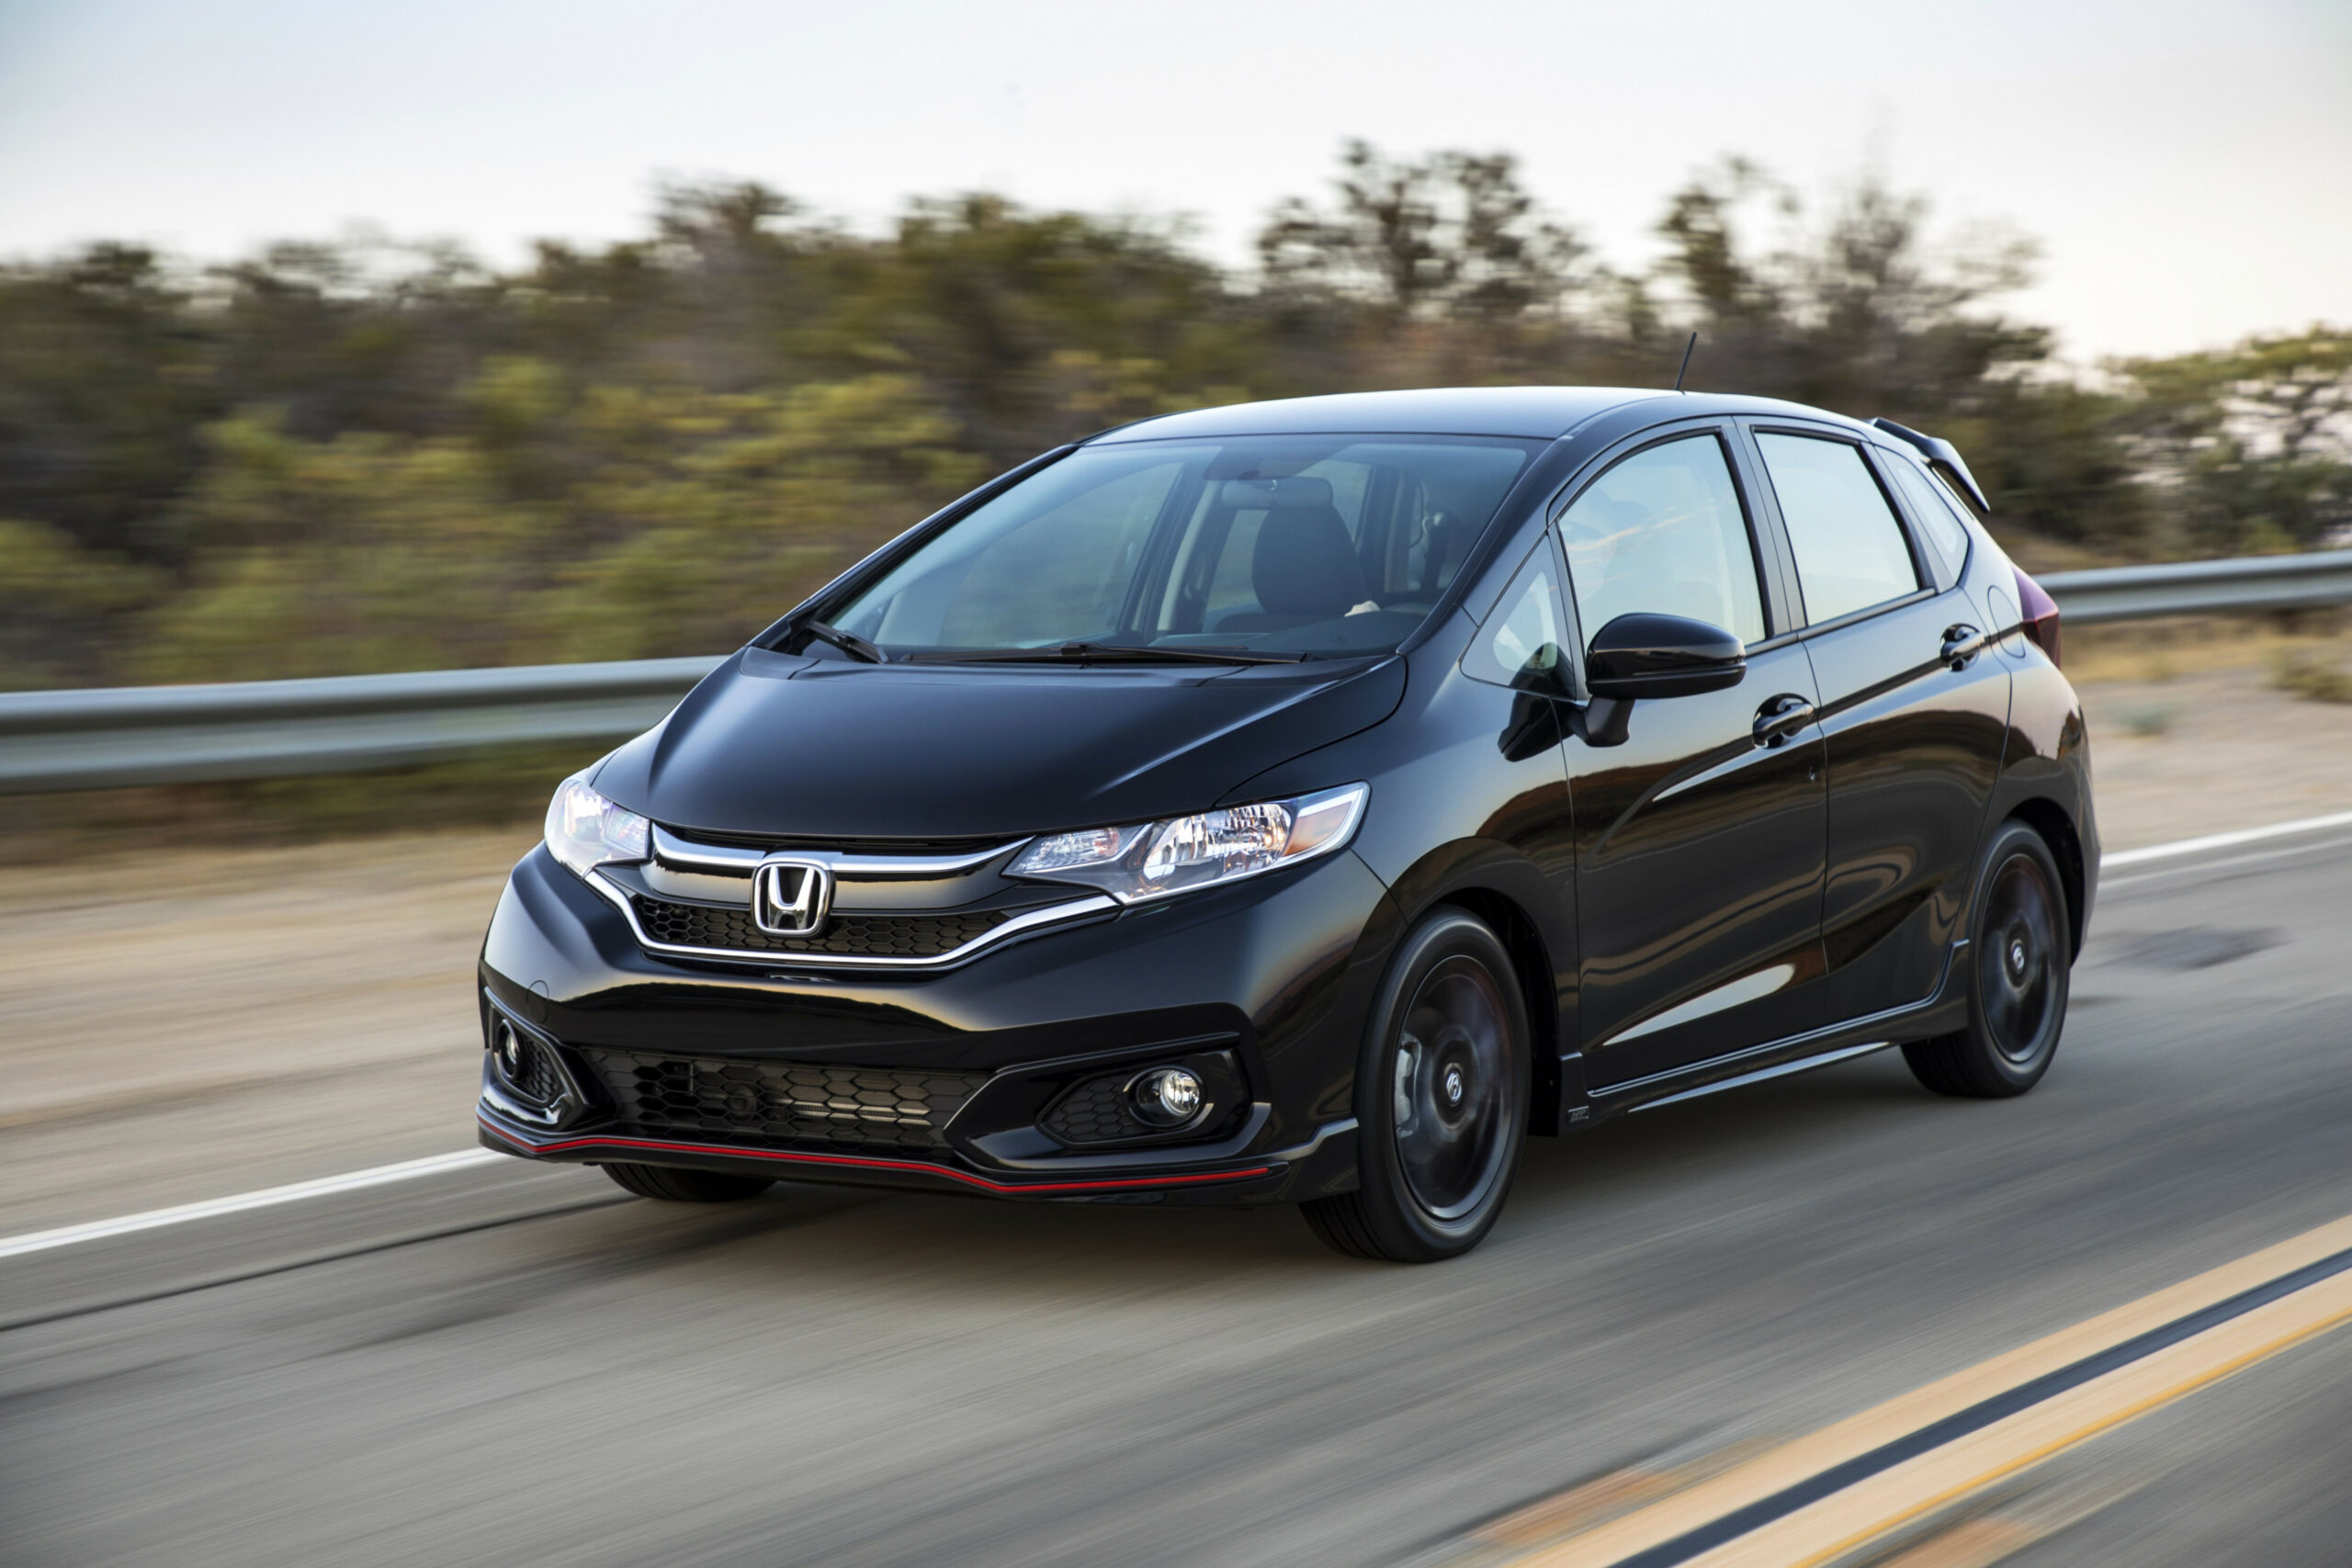 12 Honda Fit Review, Pricing, and Specs